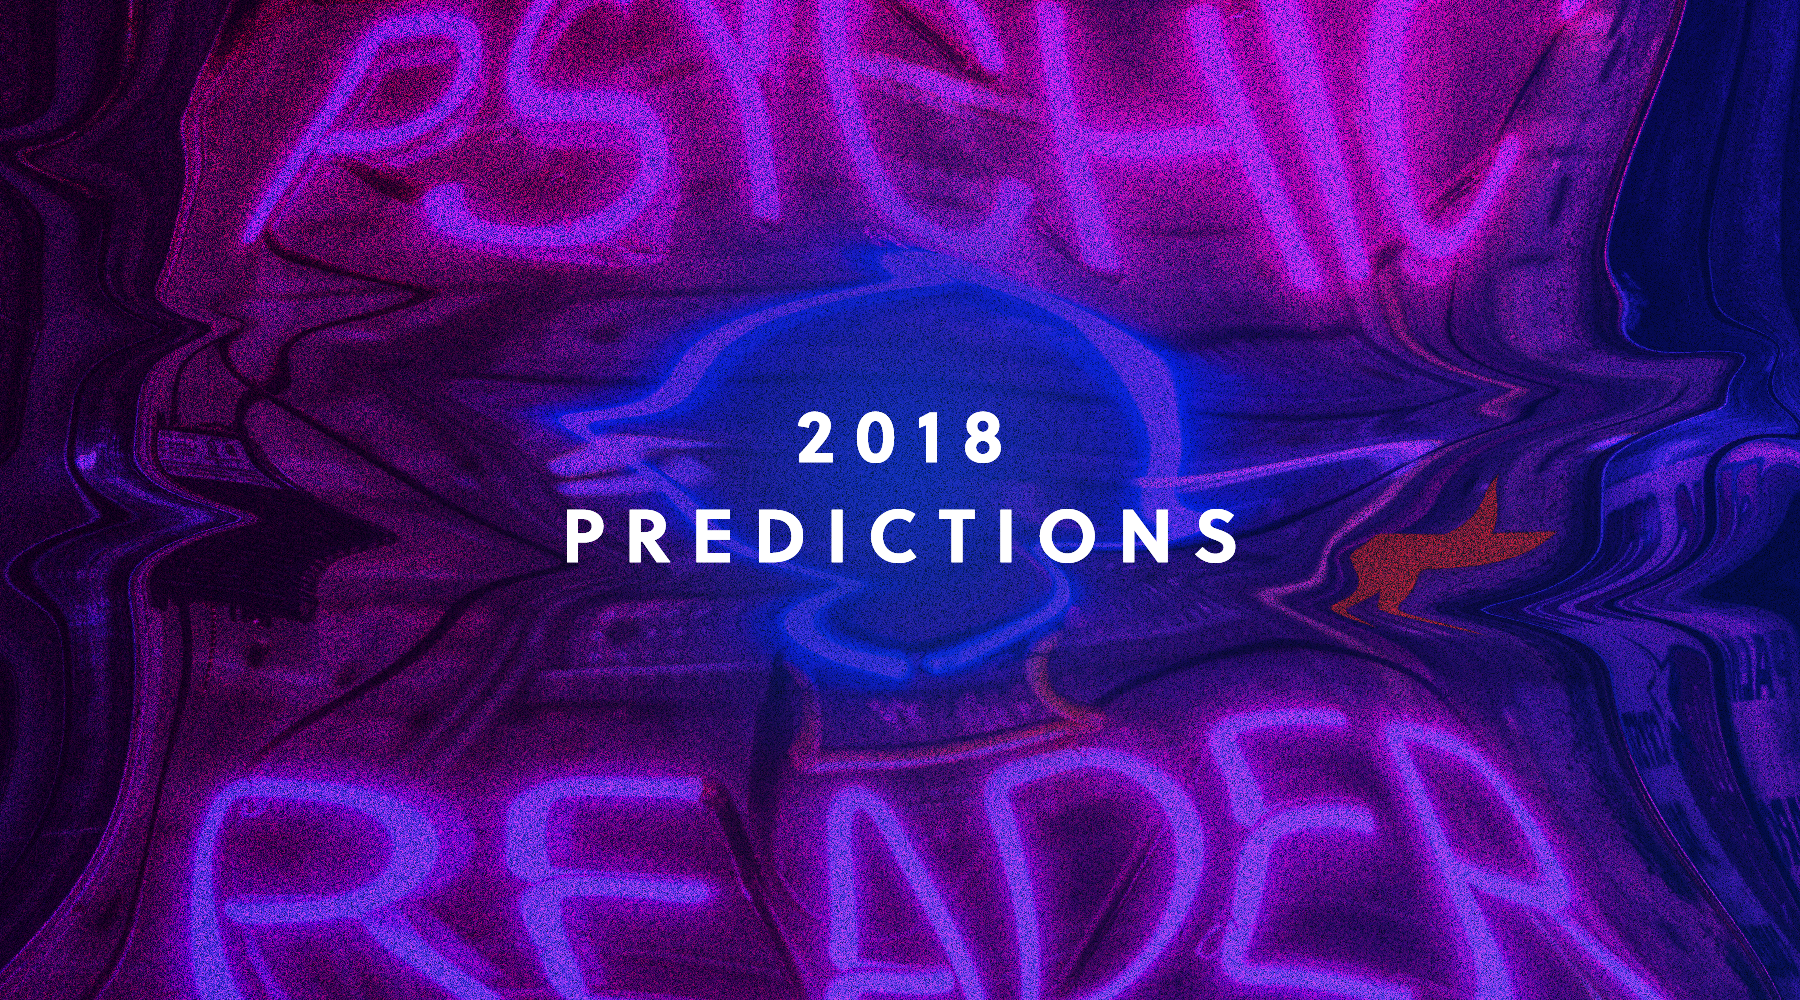 hzdg-2018-predictions.png